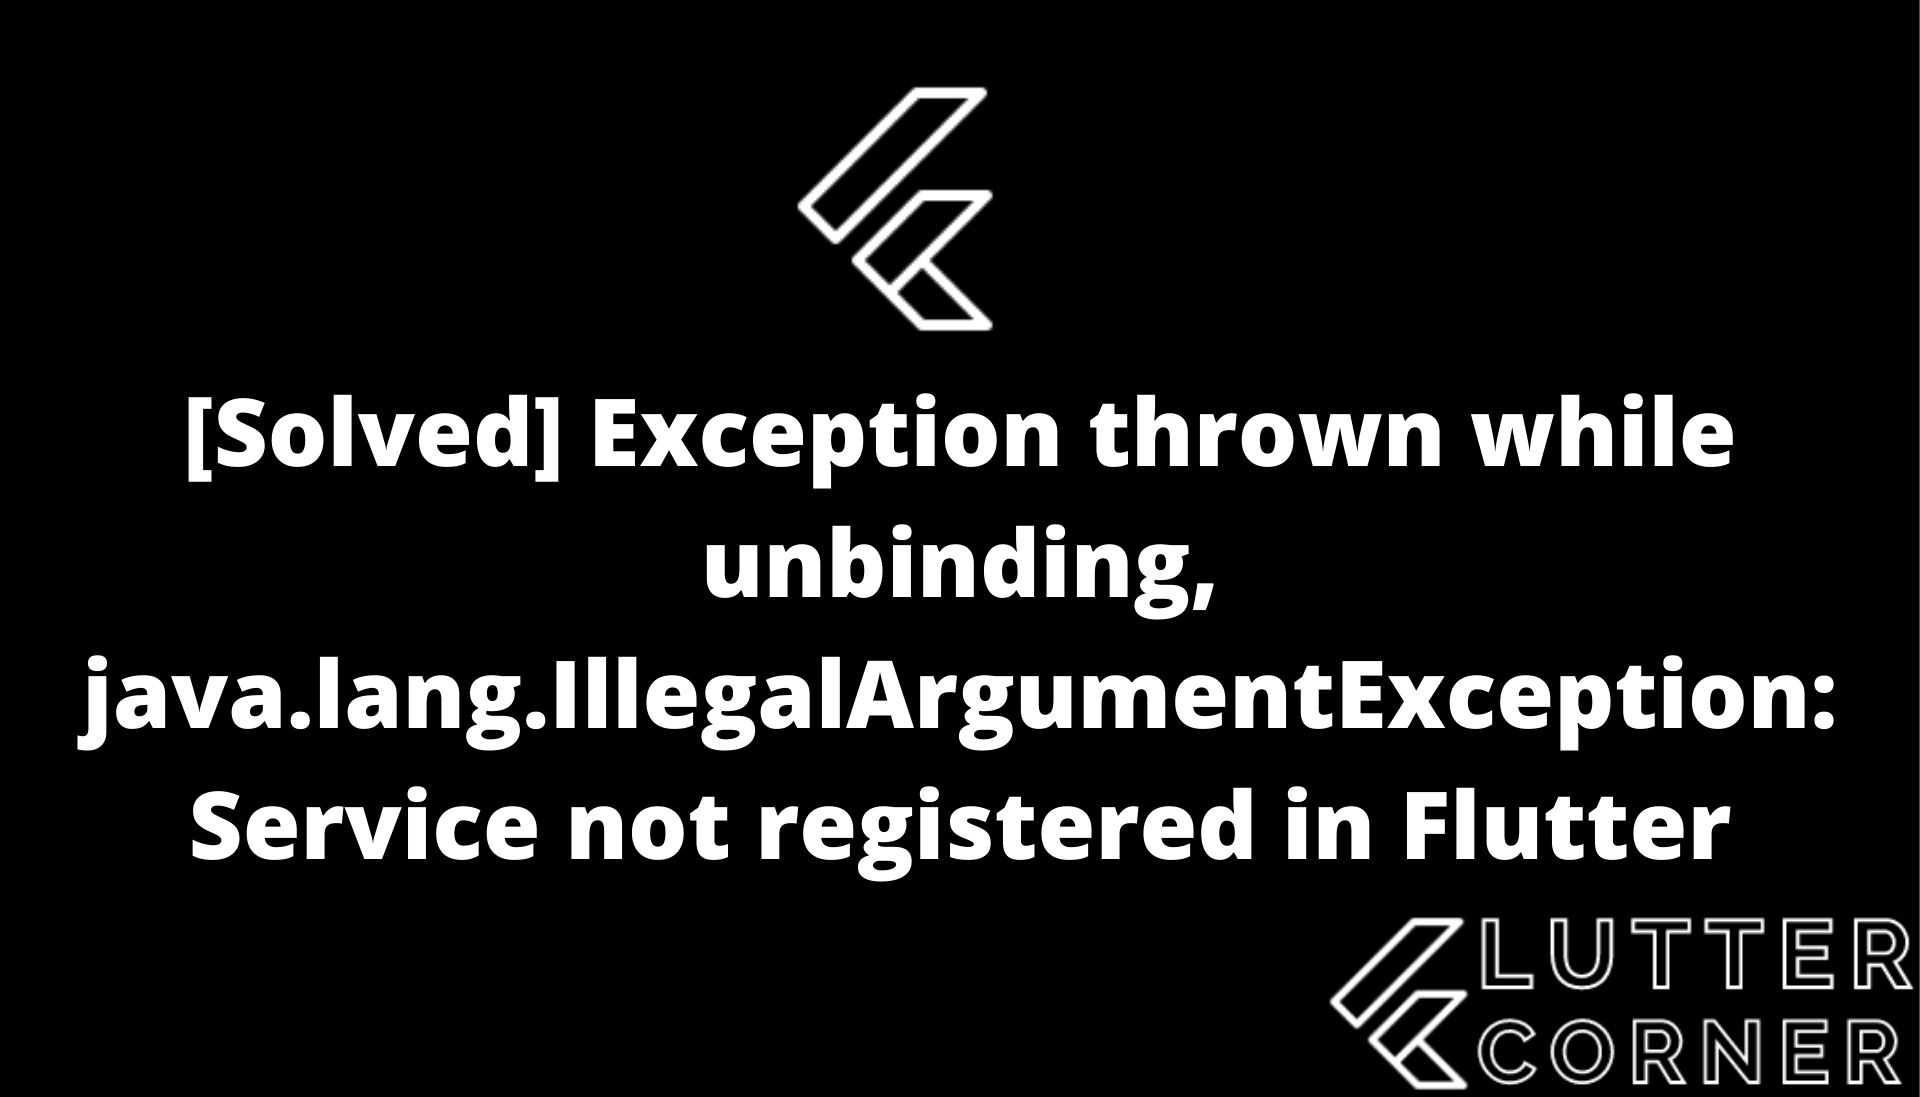 Exception thrown while unbinding, java.lang.IllegalArgumentException: Service not registered in Flutter, Exception thrown while unbinding, java.lang.IllegalArgumentException: Service not registered